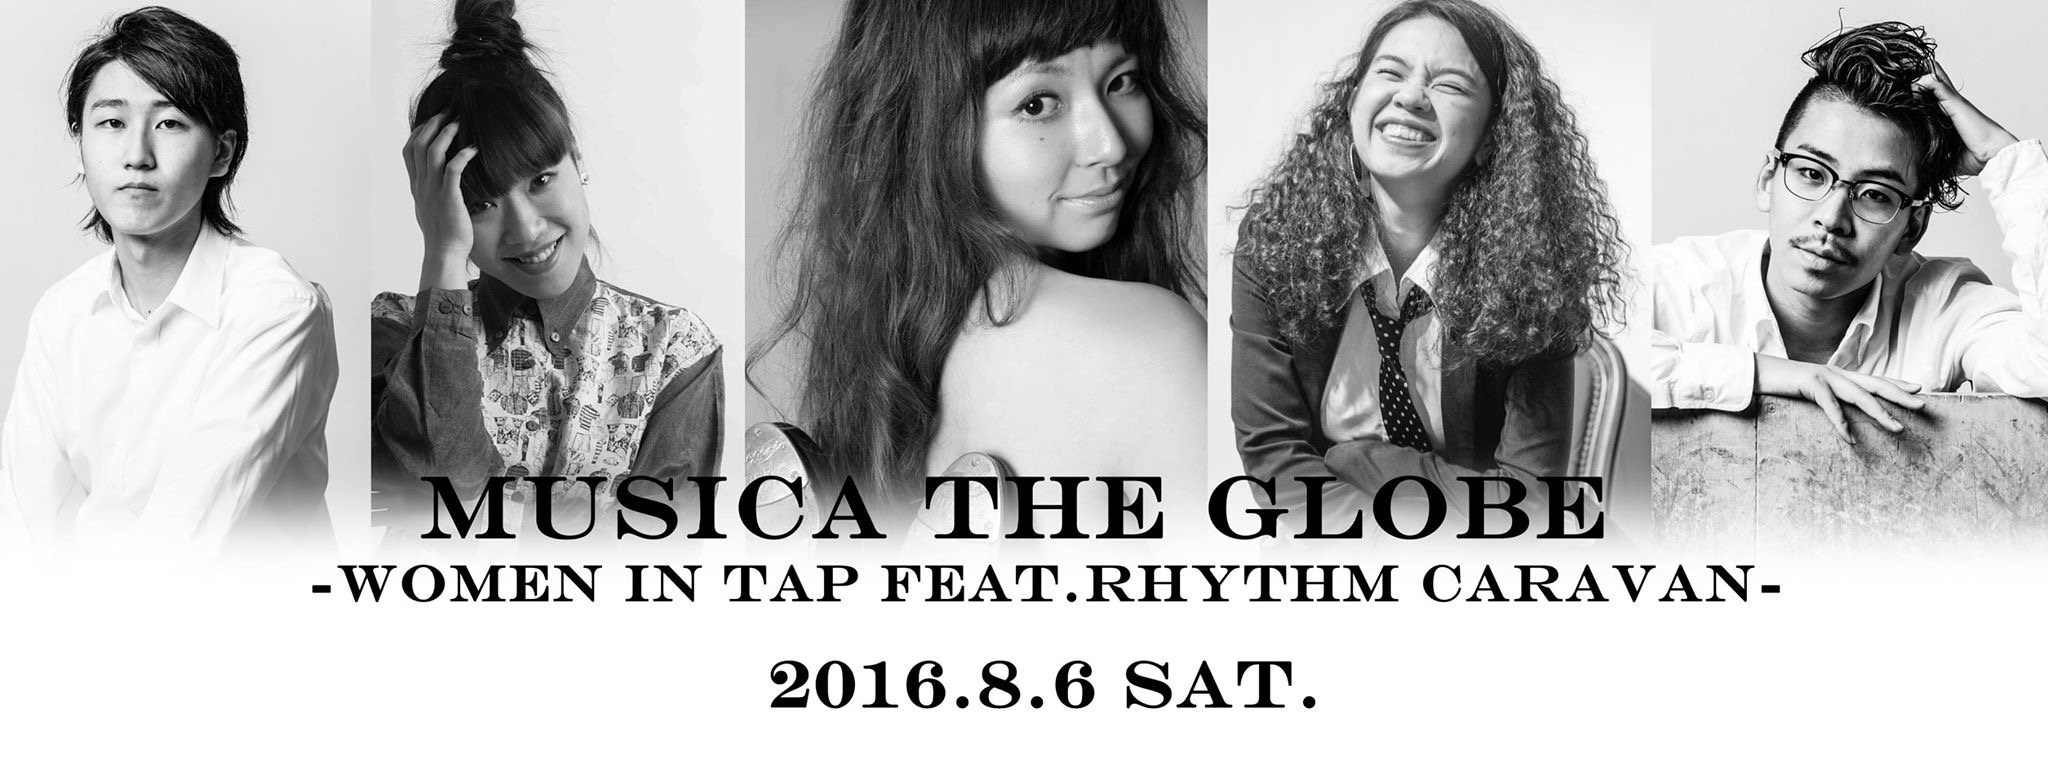 MUSICA THE GLOBE -WOMEN IN TAP FEAT.RHYTHM CARAVAN-